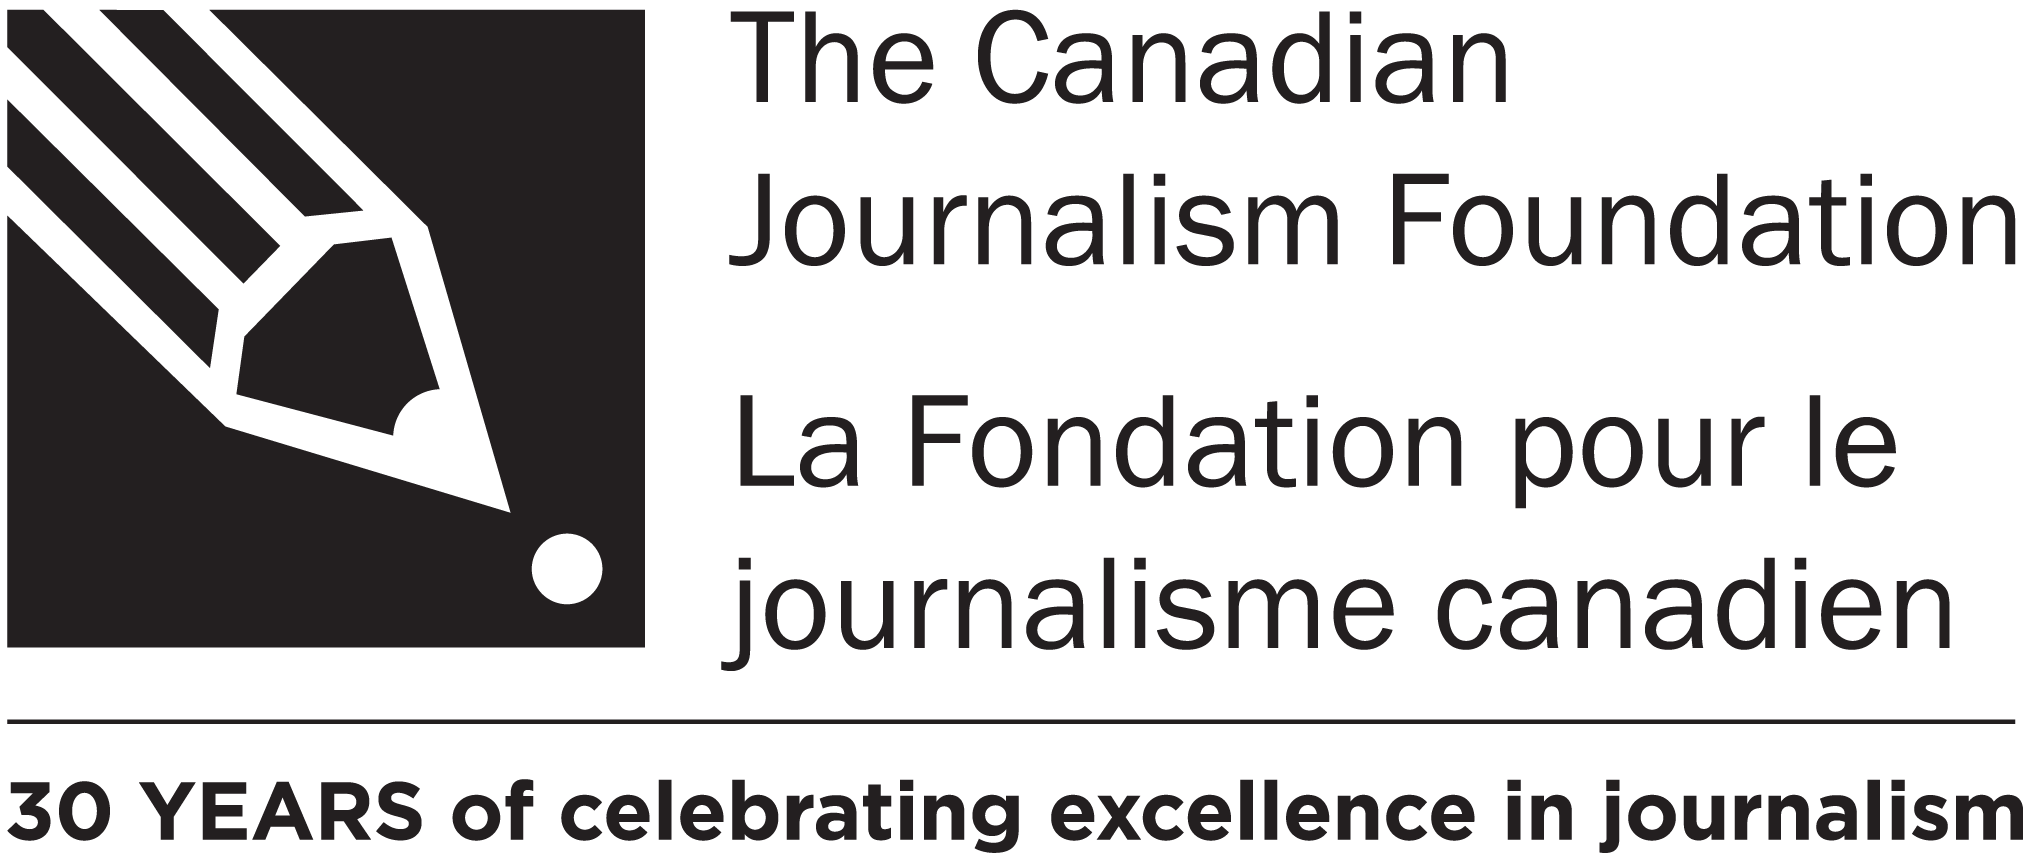 News organizations promoting news literacy and the importance of quality journalism can now apply for the CJF-Facebook Journalism Project News Literacy Award. The deadline is Feb. 21, 2020.